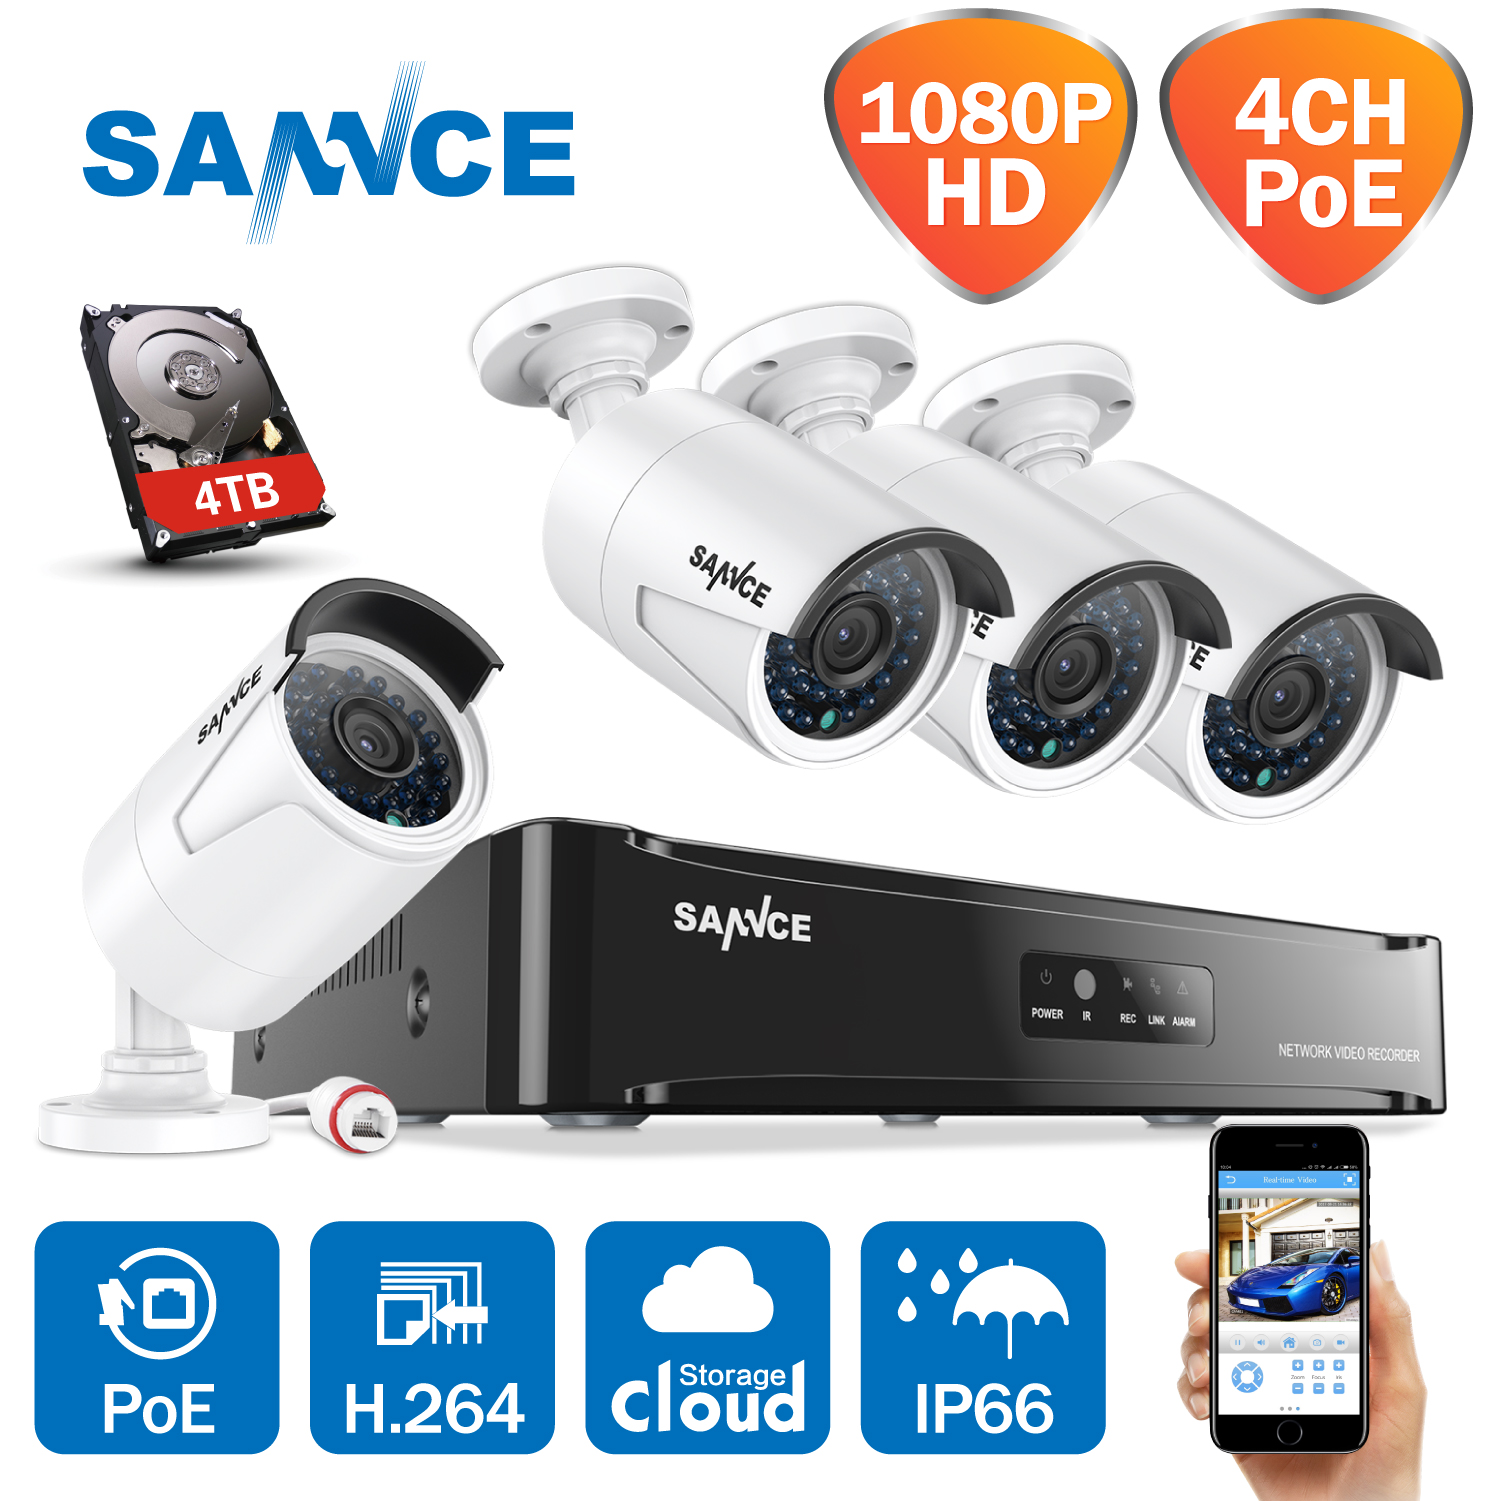 SANNCE HD 1080P CCTV System 4CH POE NVR 2/3/4TB HDD 4PCS 2MP 1080P POE IP Camera Network Outdoor Cameras Home Security System 10ml high grade tower type empty essential oil bottles gold plated crystal aromatherapy bottles page 2